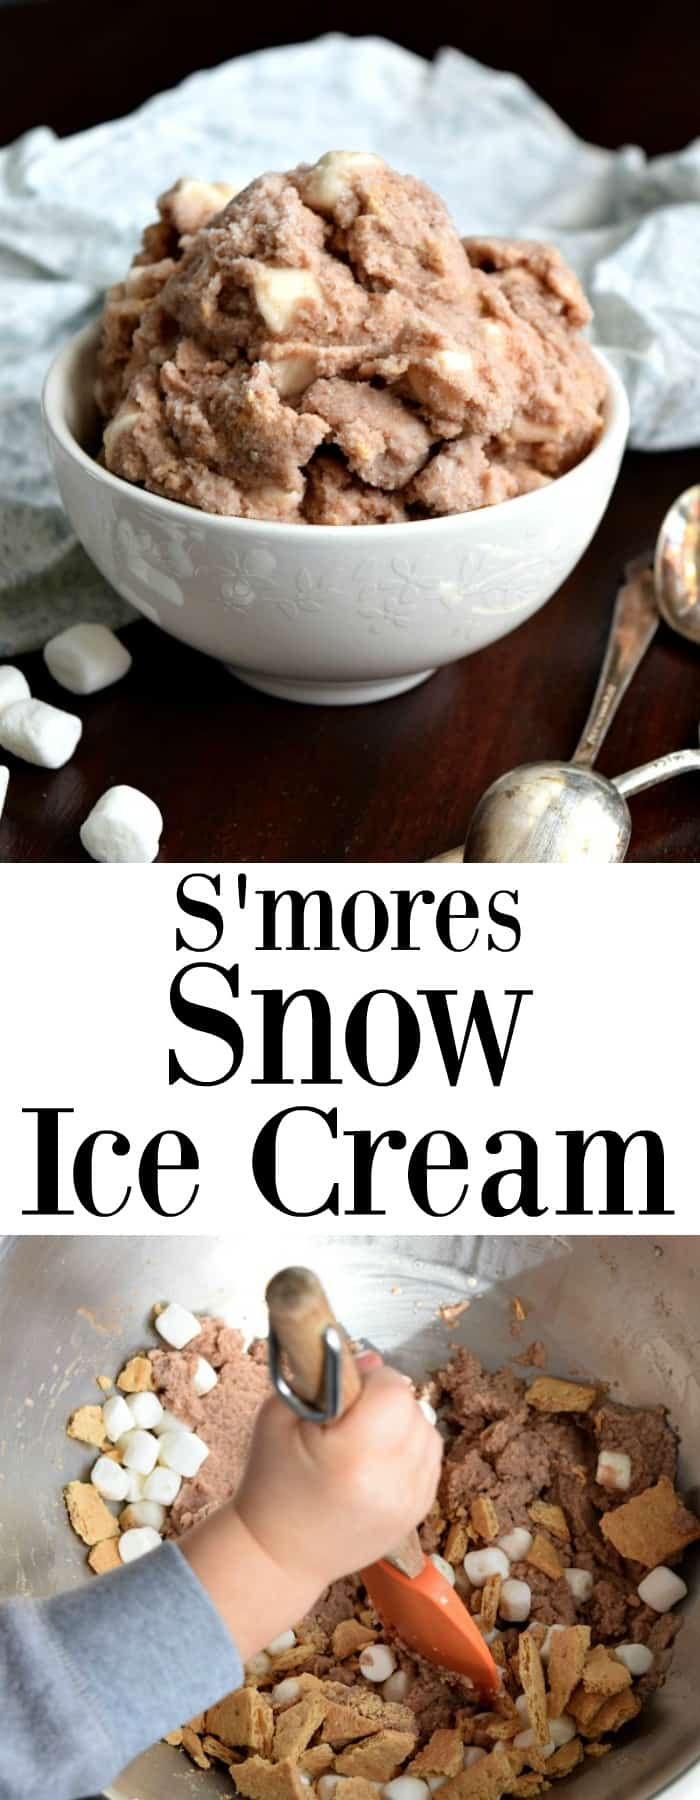 S'mores Snow Ice Cream